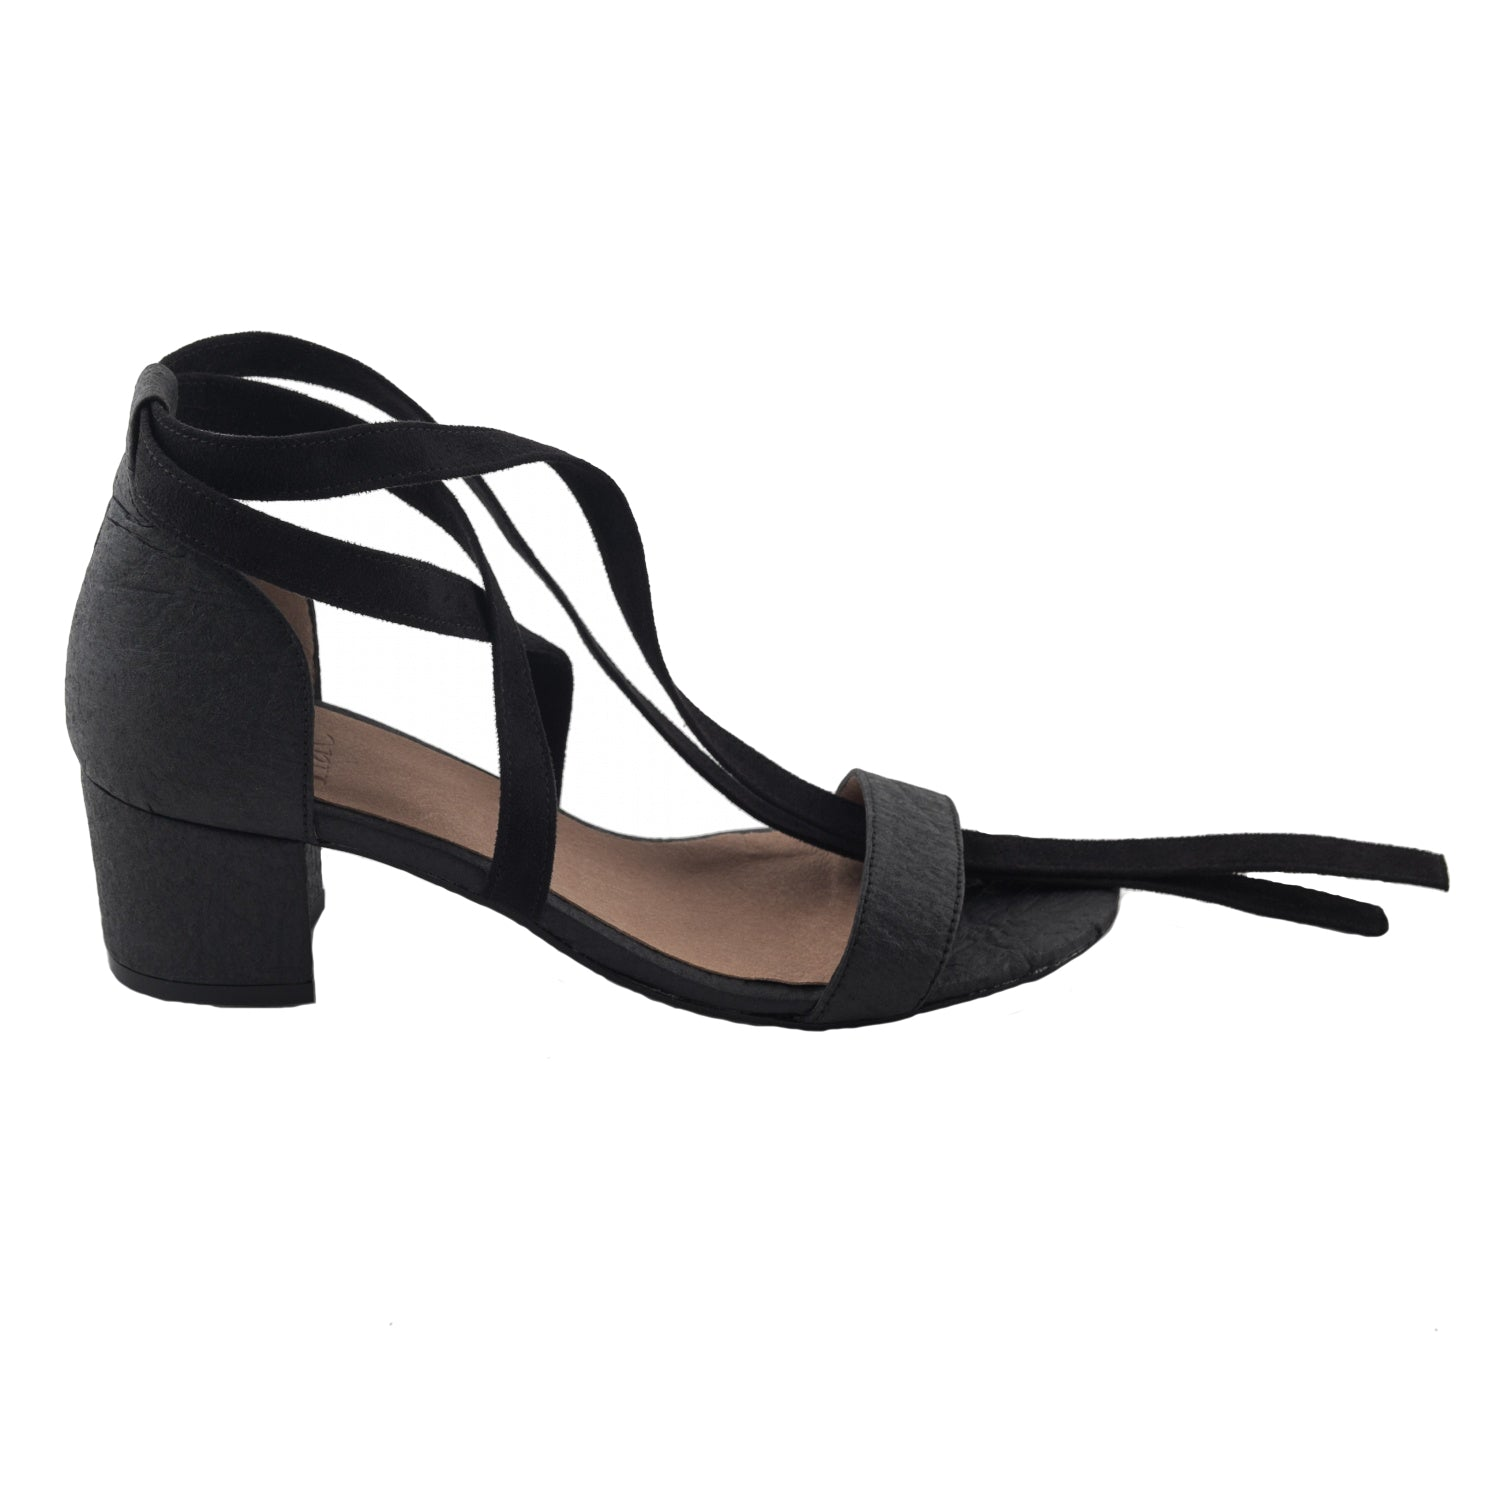 4aeedca766bc ... vegan sandals shoes mid heel strappy black Piñatex by NAE Clau pinatex  ecofriendly ...